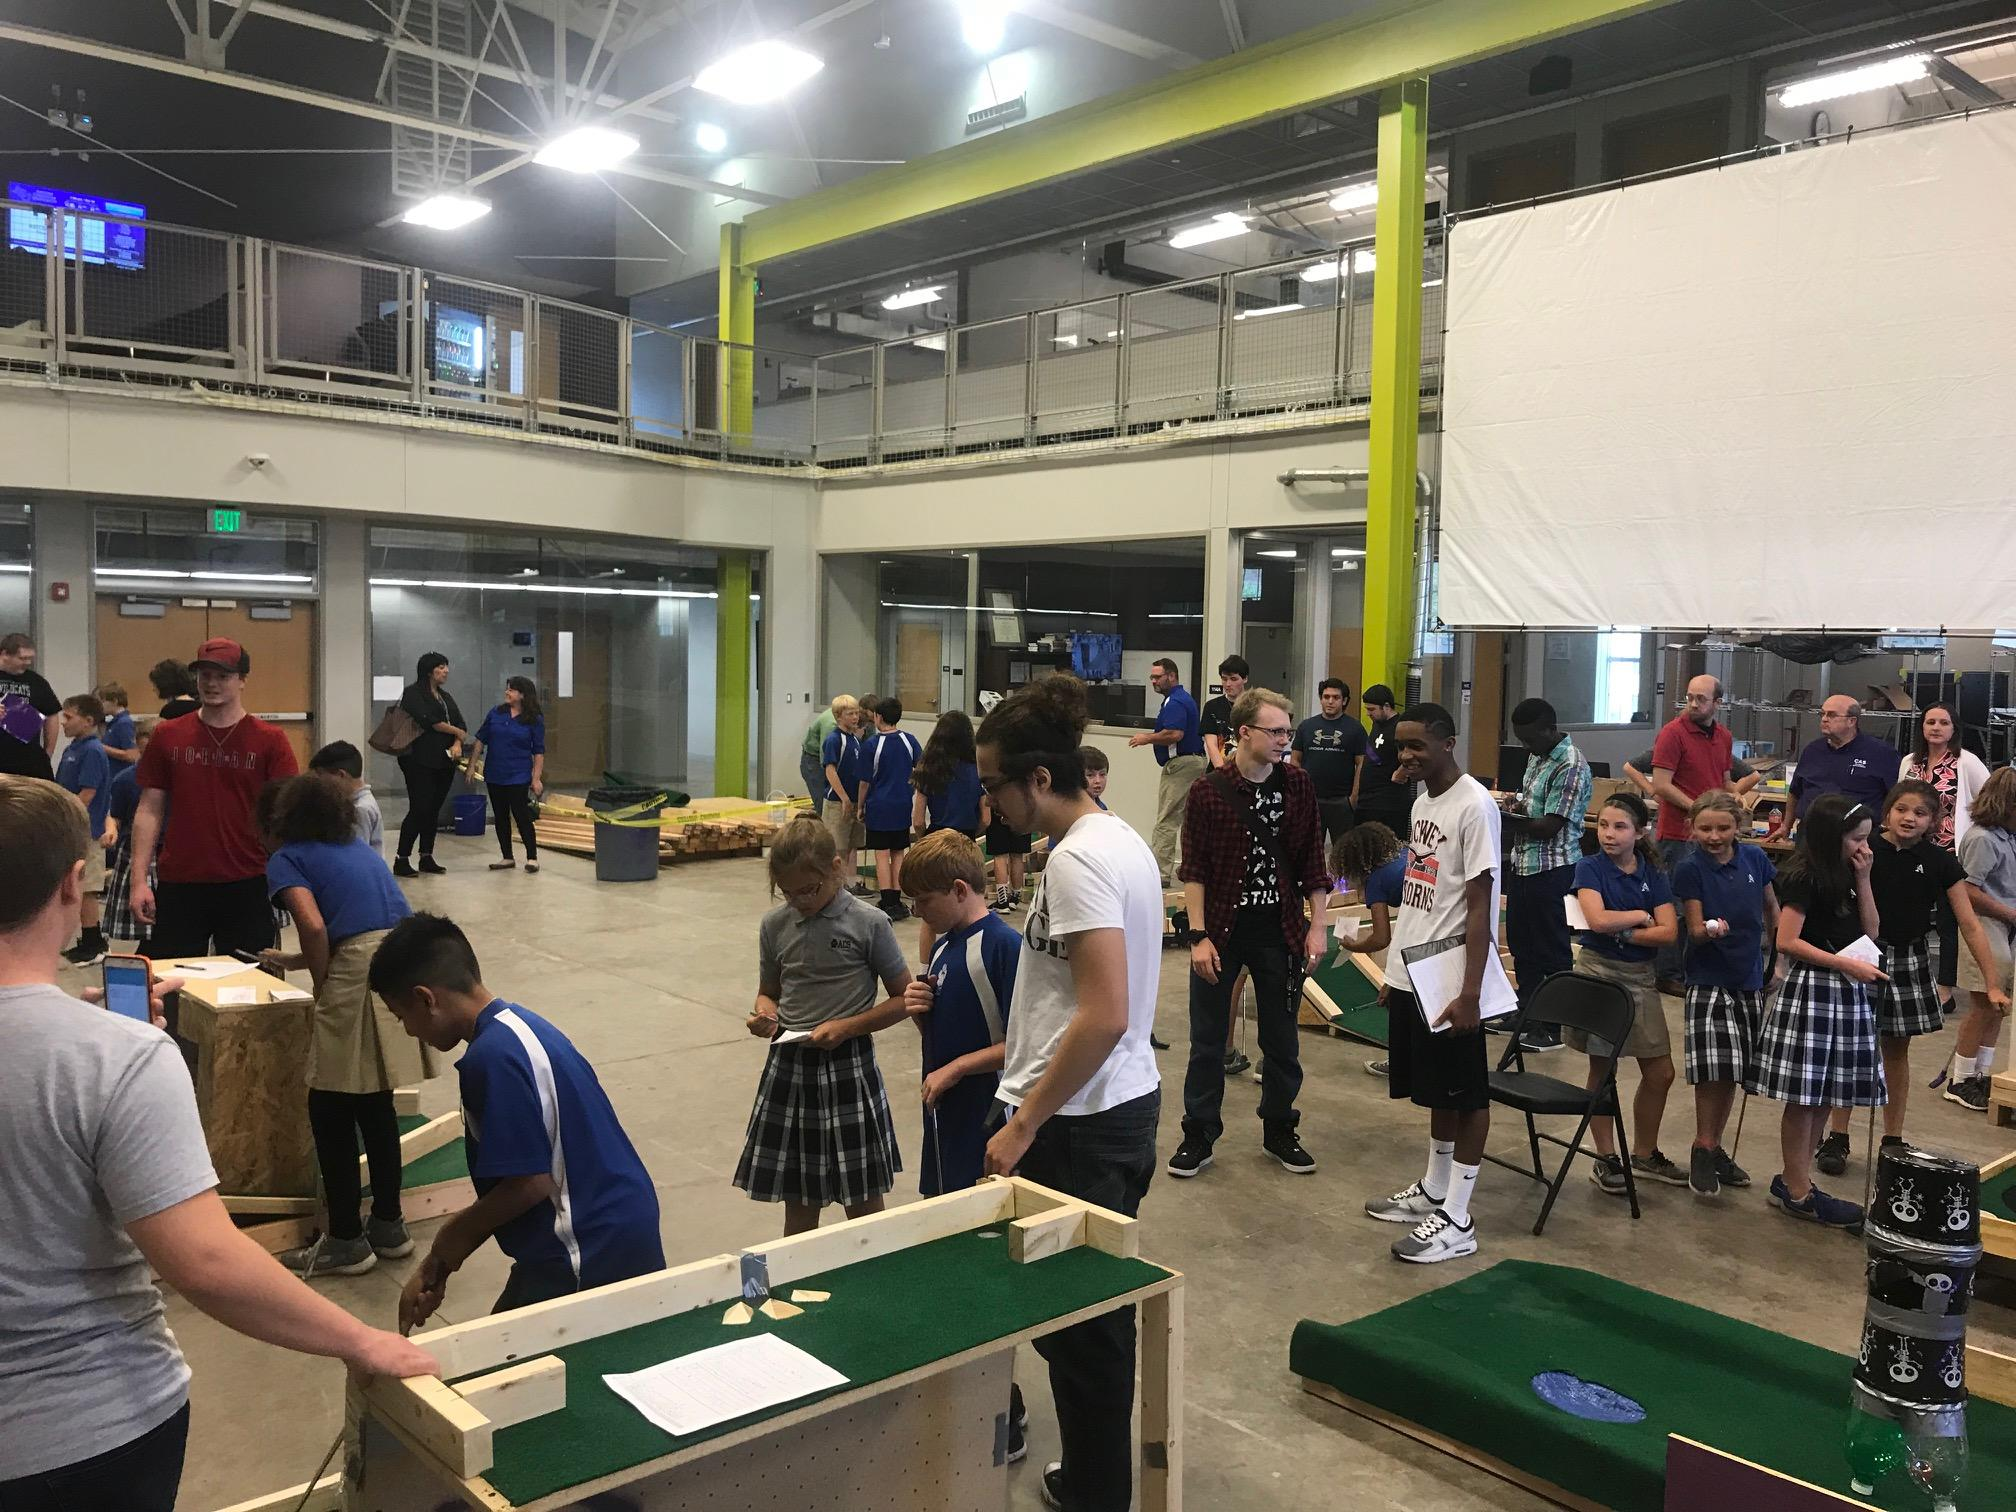 acu-students-build-mini-golf-holes-op-11-cp-1508452333856-9035308-ver1-0.jpg